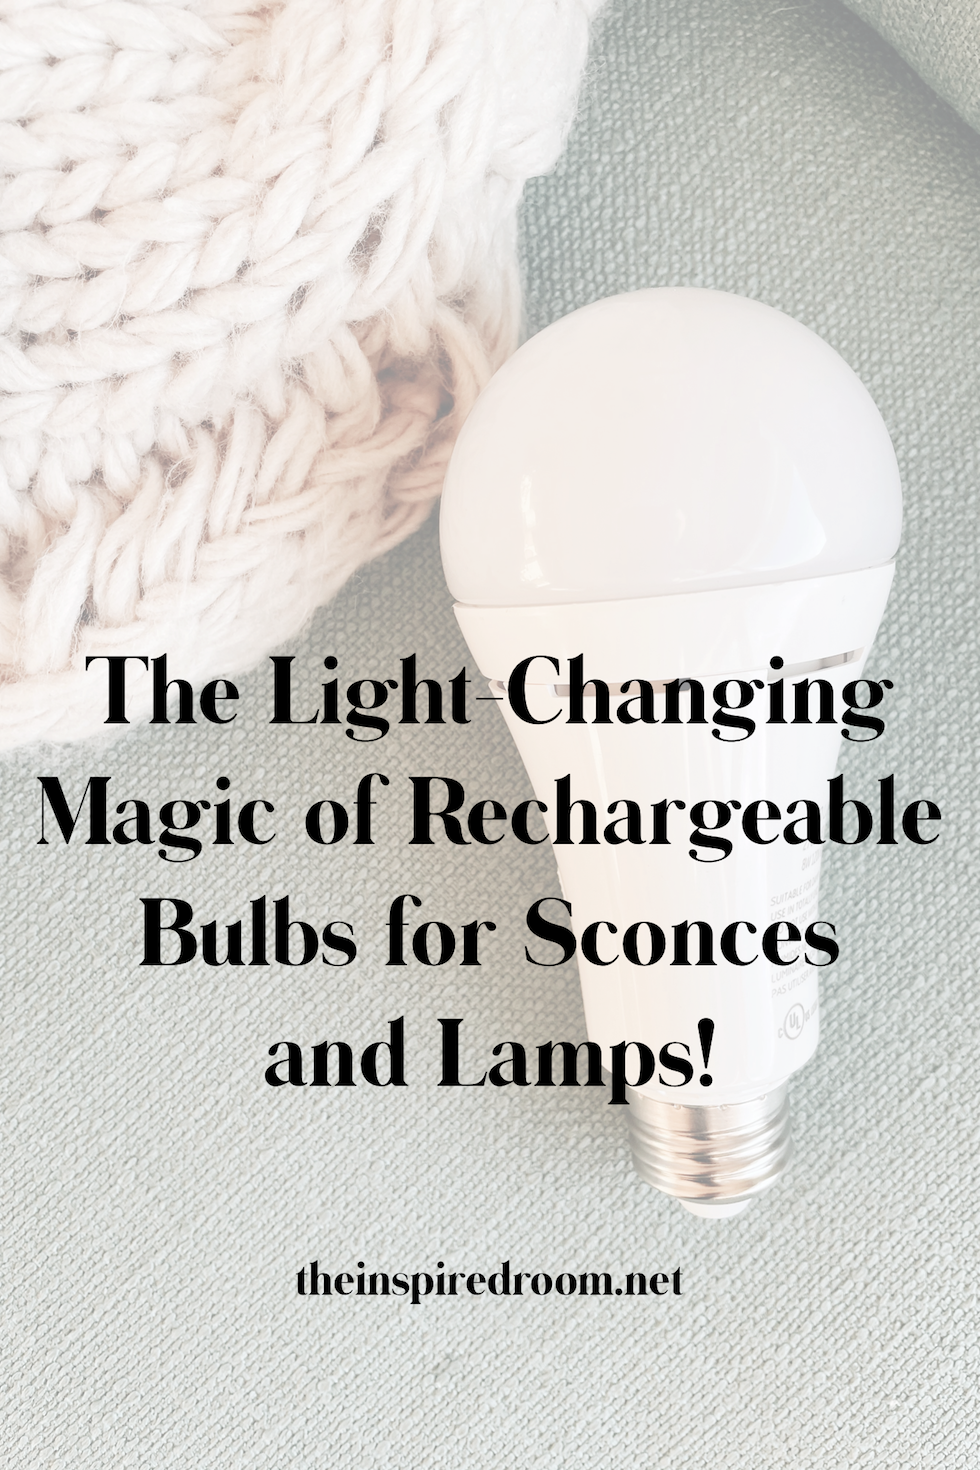 The changing magic of rechargeable bulbs for wall lights + lamps!